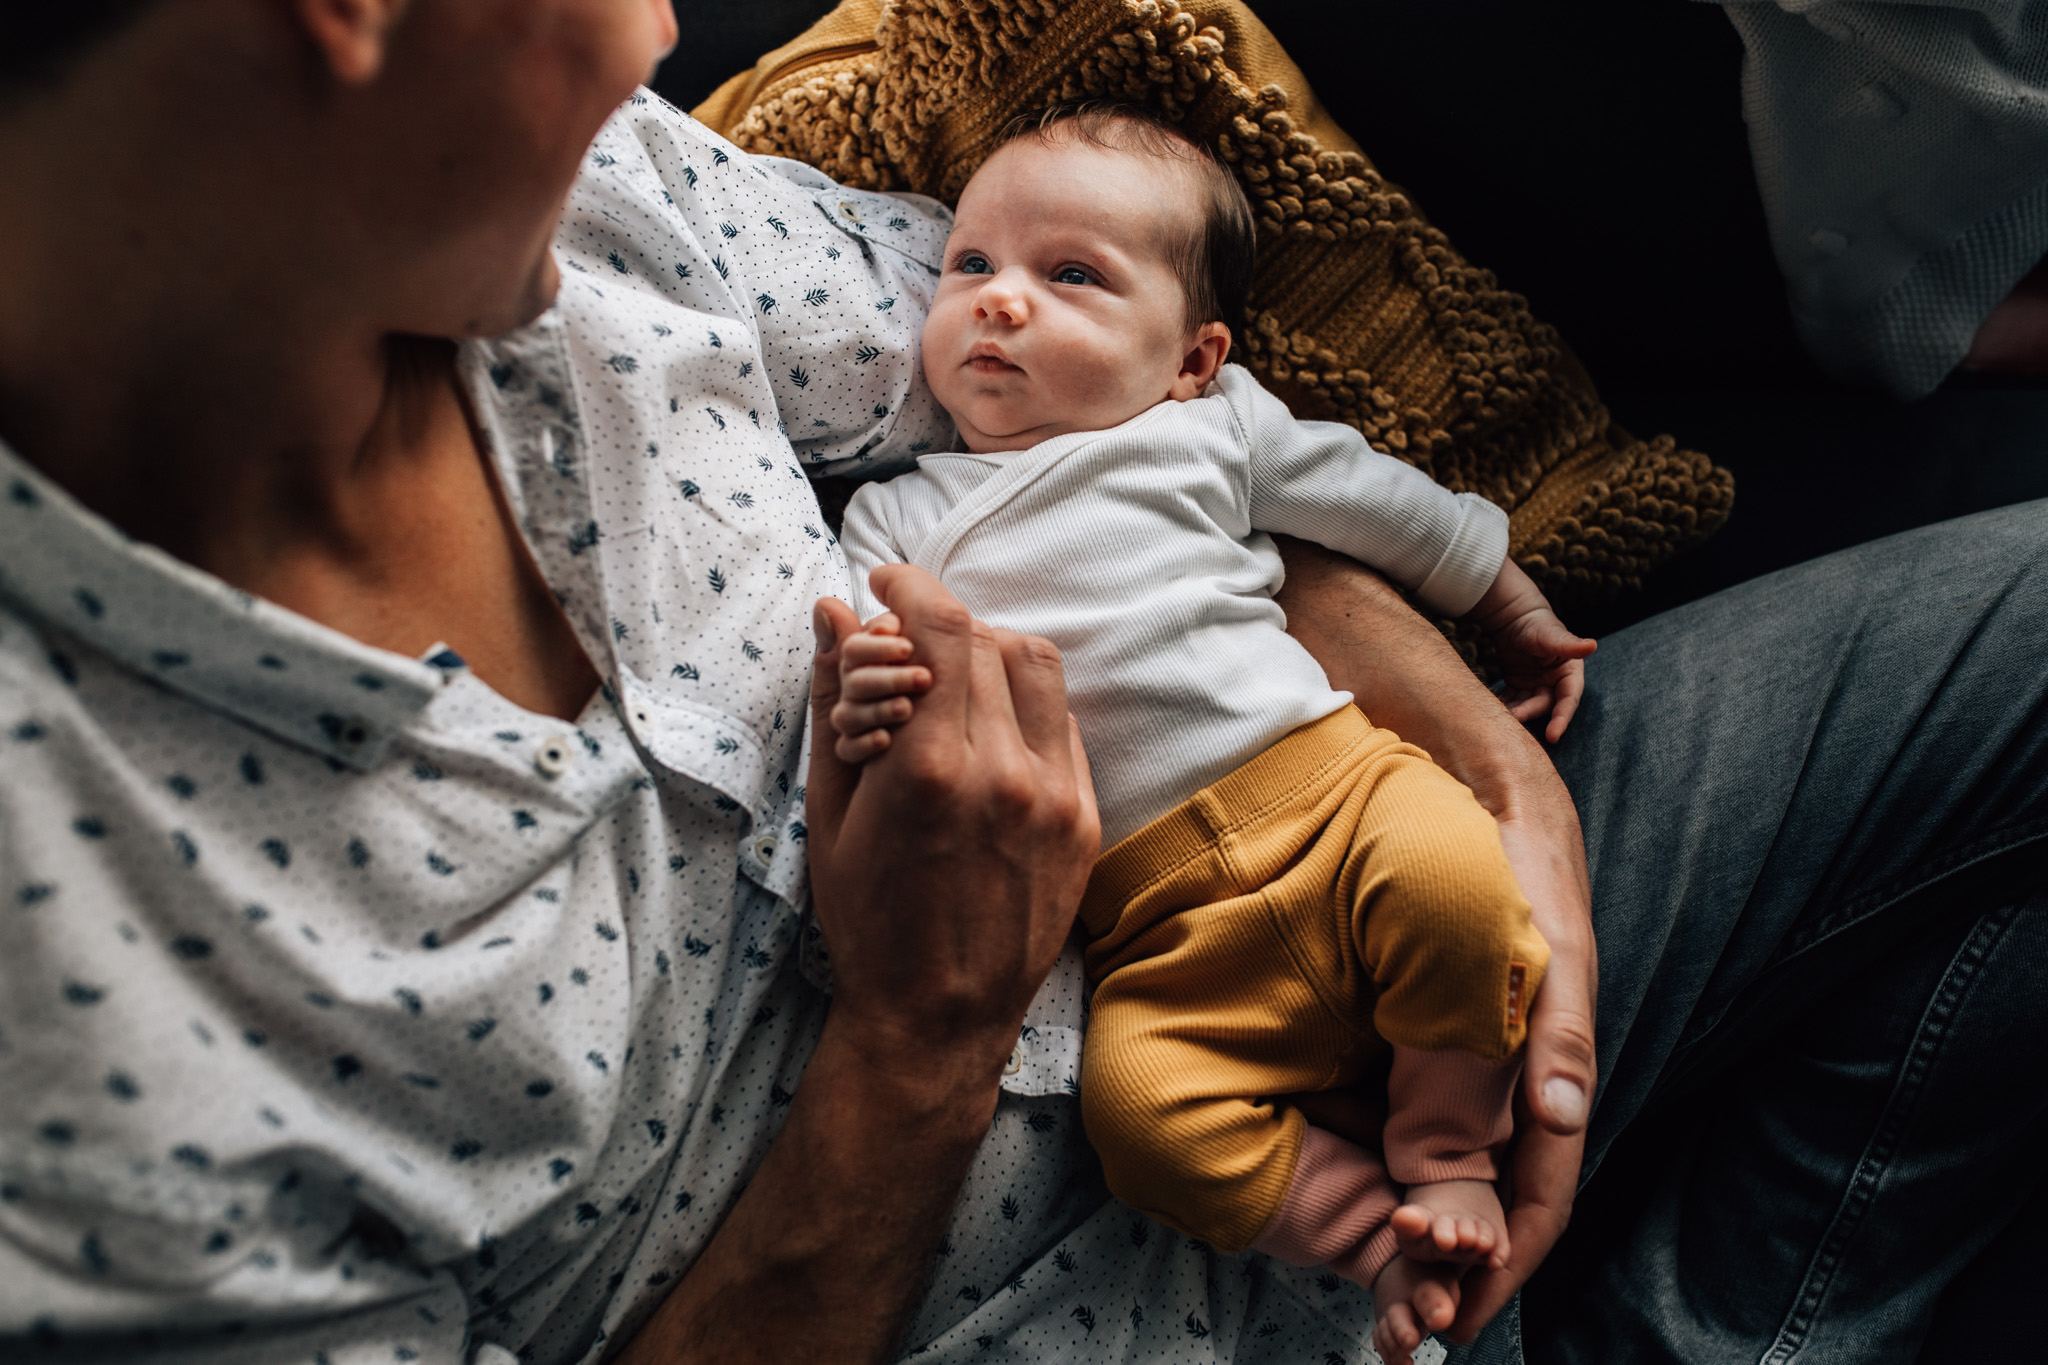 Portrait of a newborn baby being hold by her dad on his lap. Baby girl contemplating at him, while holding his hand.